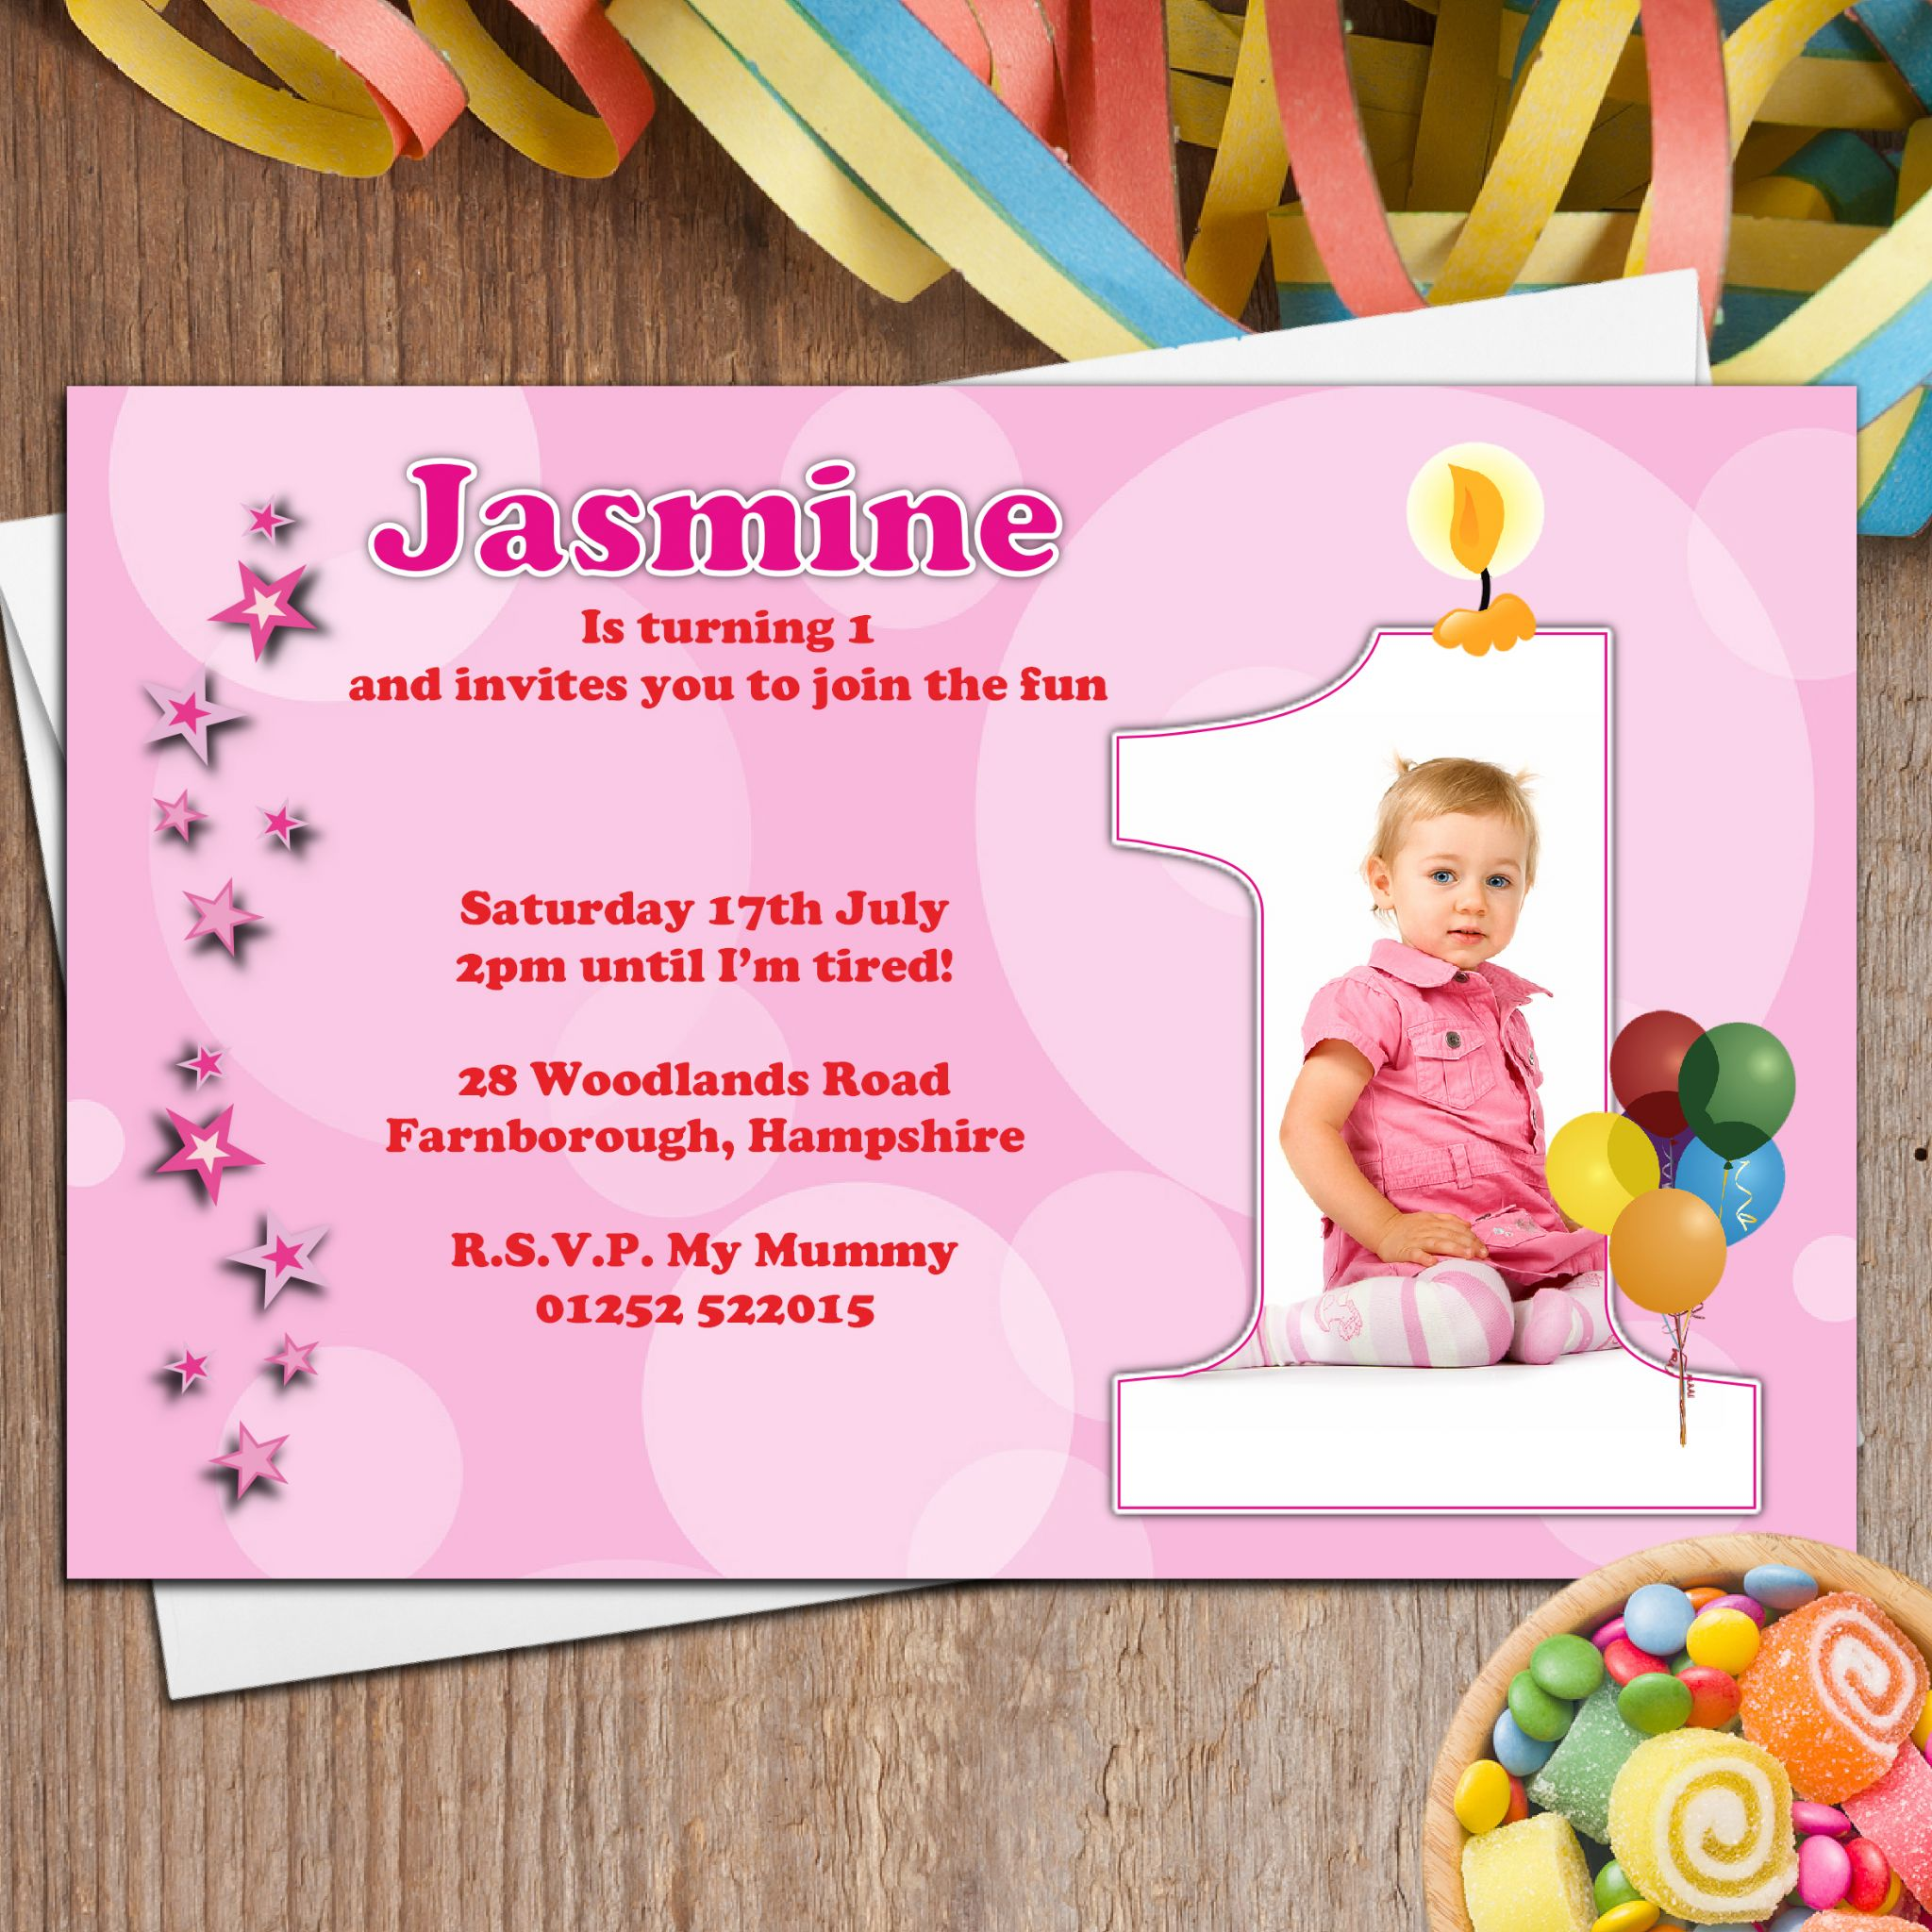 1st birthday card message ideas ; 1st-birthday-cards-for-baby-girl-awesome-beautiful-baby-shower-invitation-message-in-marathi-of-1st-birthday-cards-for-baby-girl